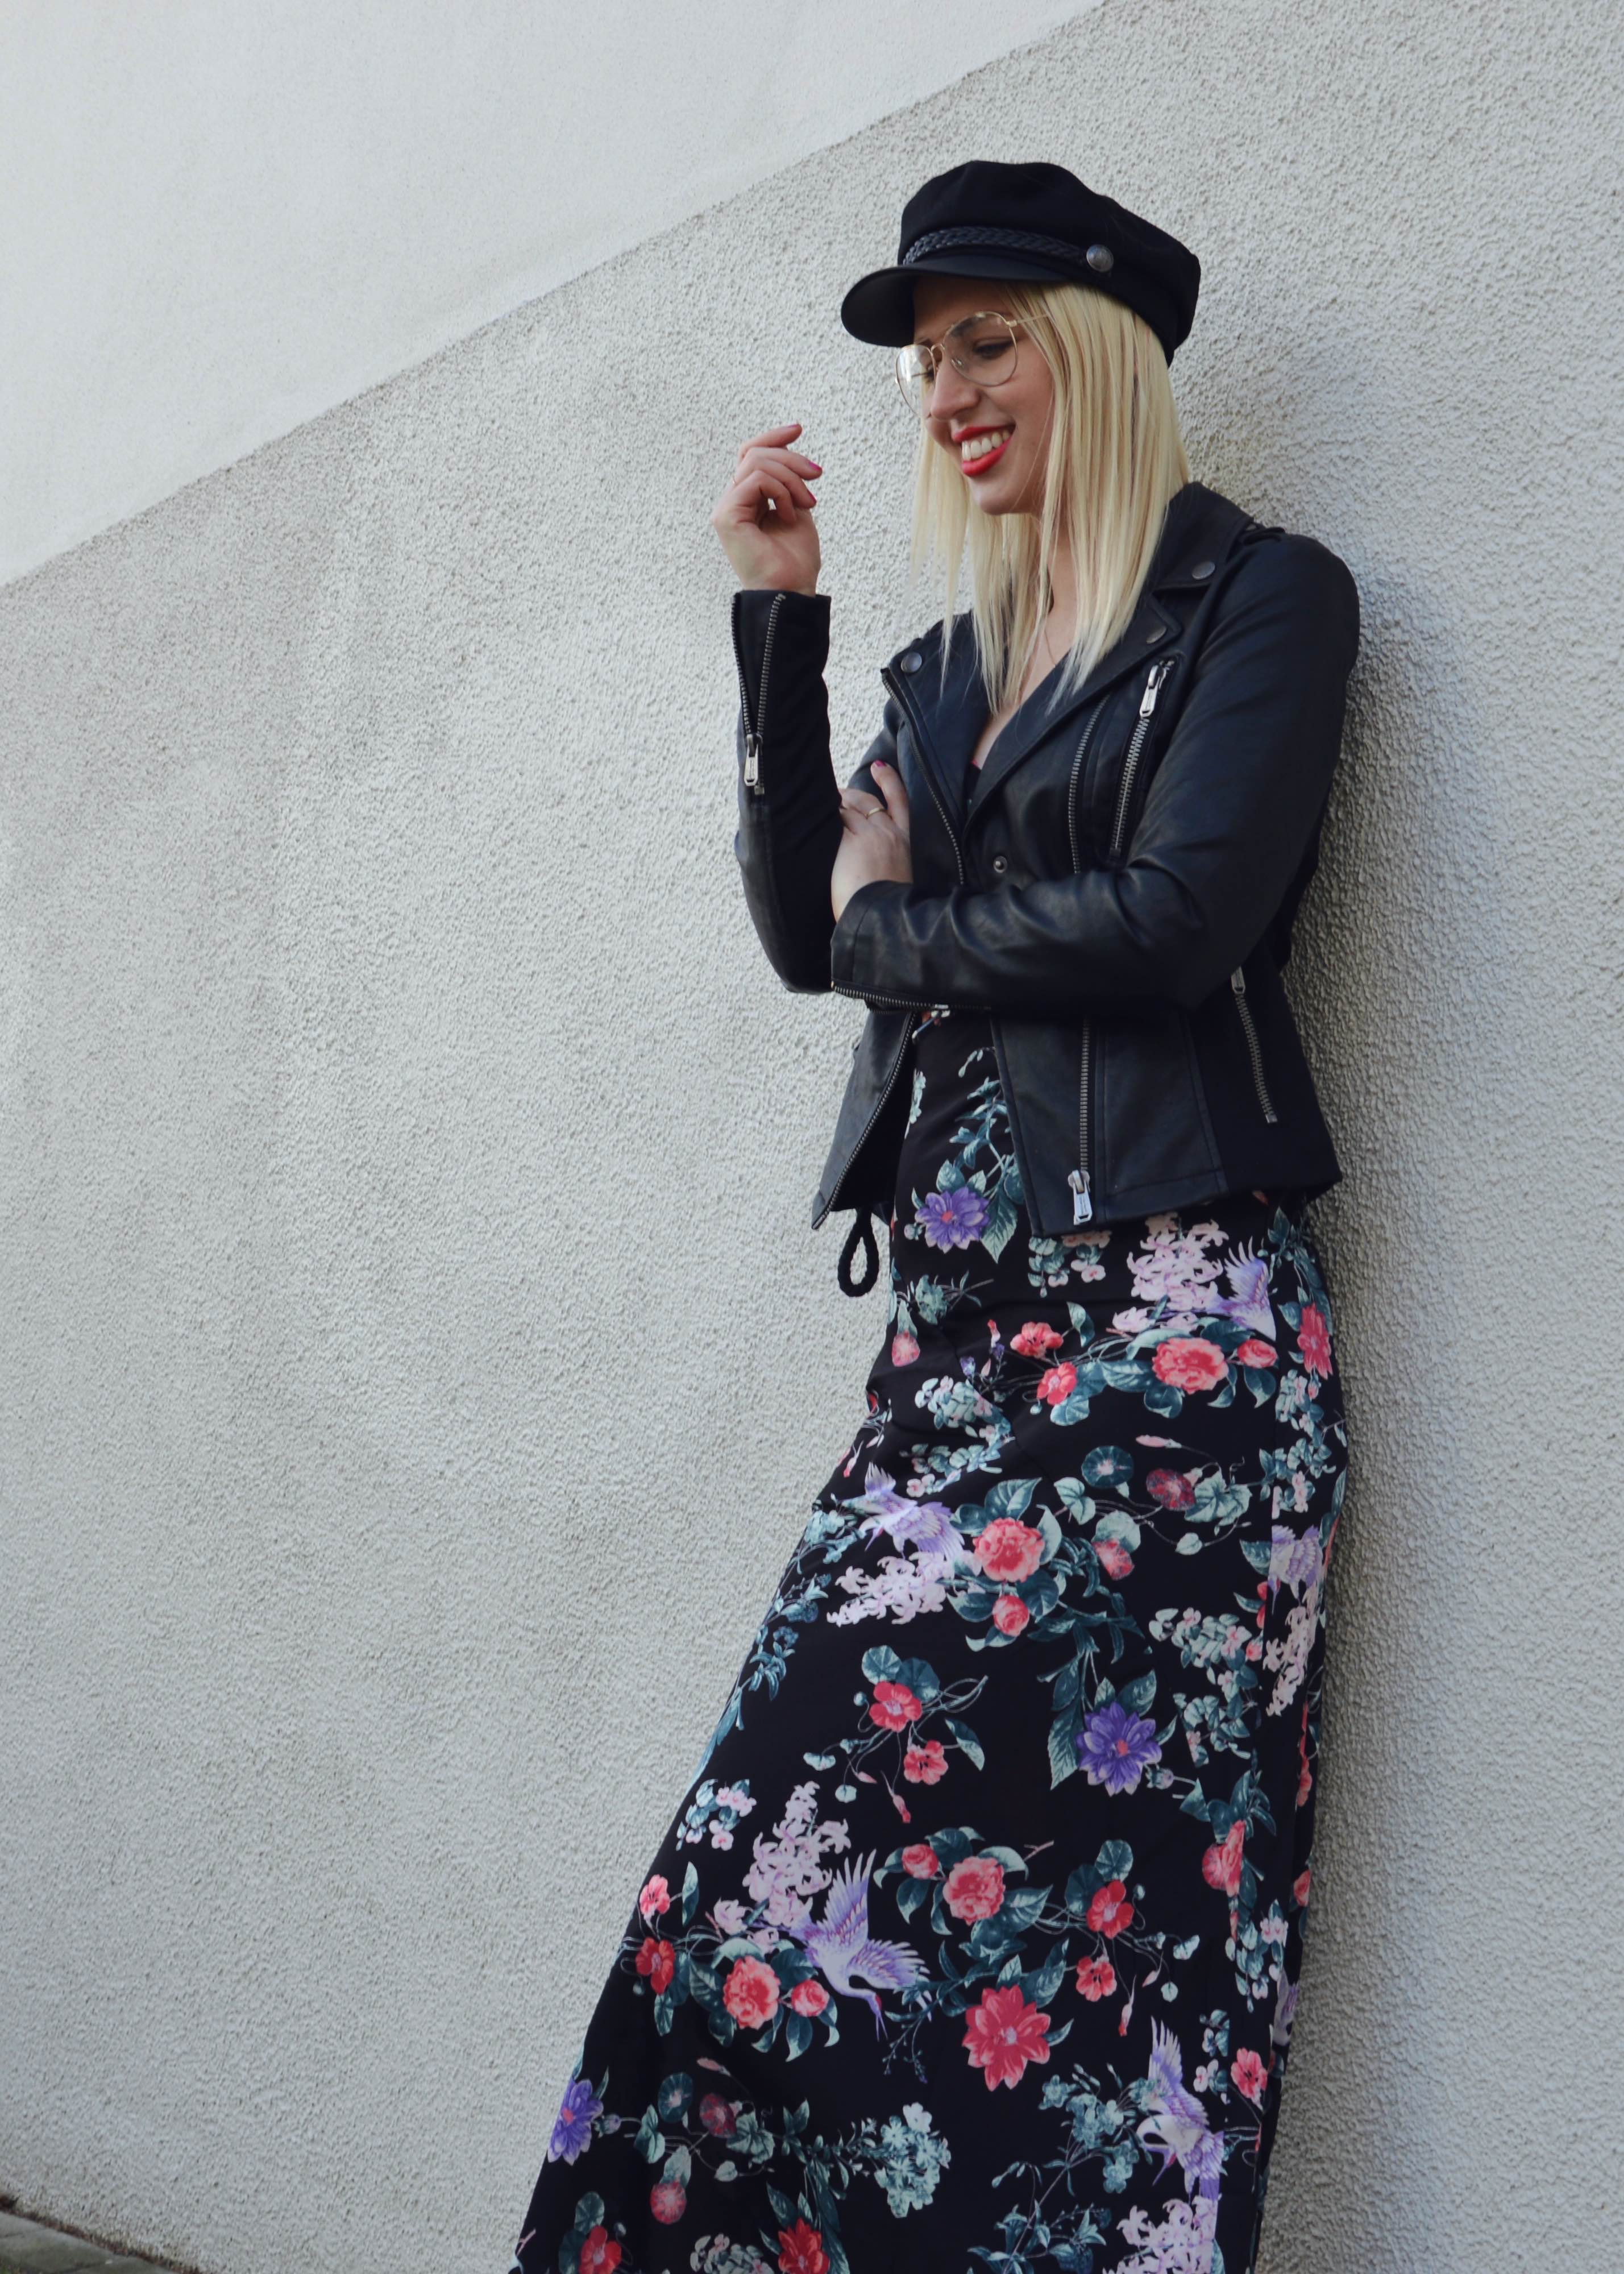 Flowerdress and Bikerjacket21